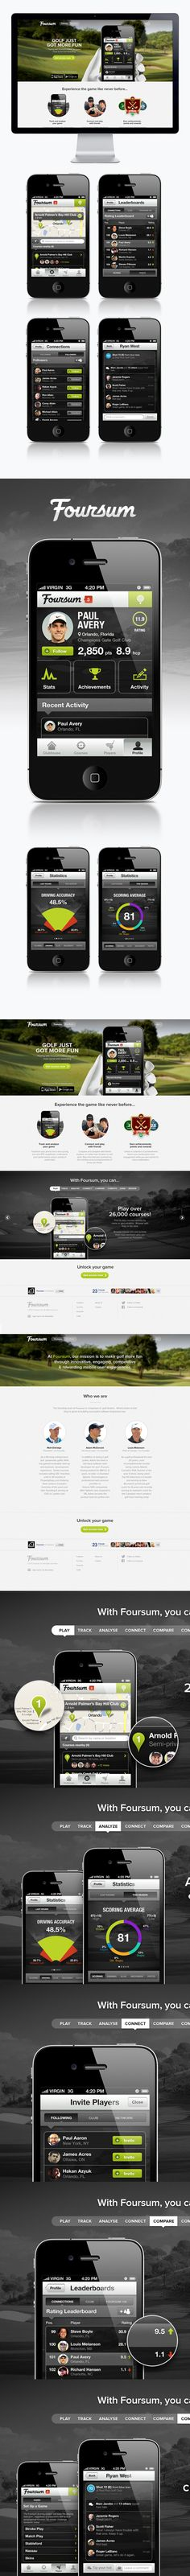 Foursum Golf by Moosesyrup , via Behance *** Full product, mobile and web design for Foursum Golf. Foursum Golf by Moosesyrup , via Behance *** Full product, mobile and web design for Foursum Golf. Mobile Web Design, Web Ui Design, Web Layout, Apps, Ui Design Inspiration, Ui Web, User Interface Design, Interactive Design, Iphone